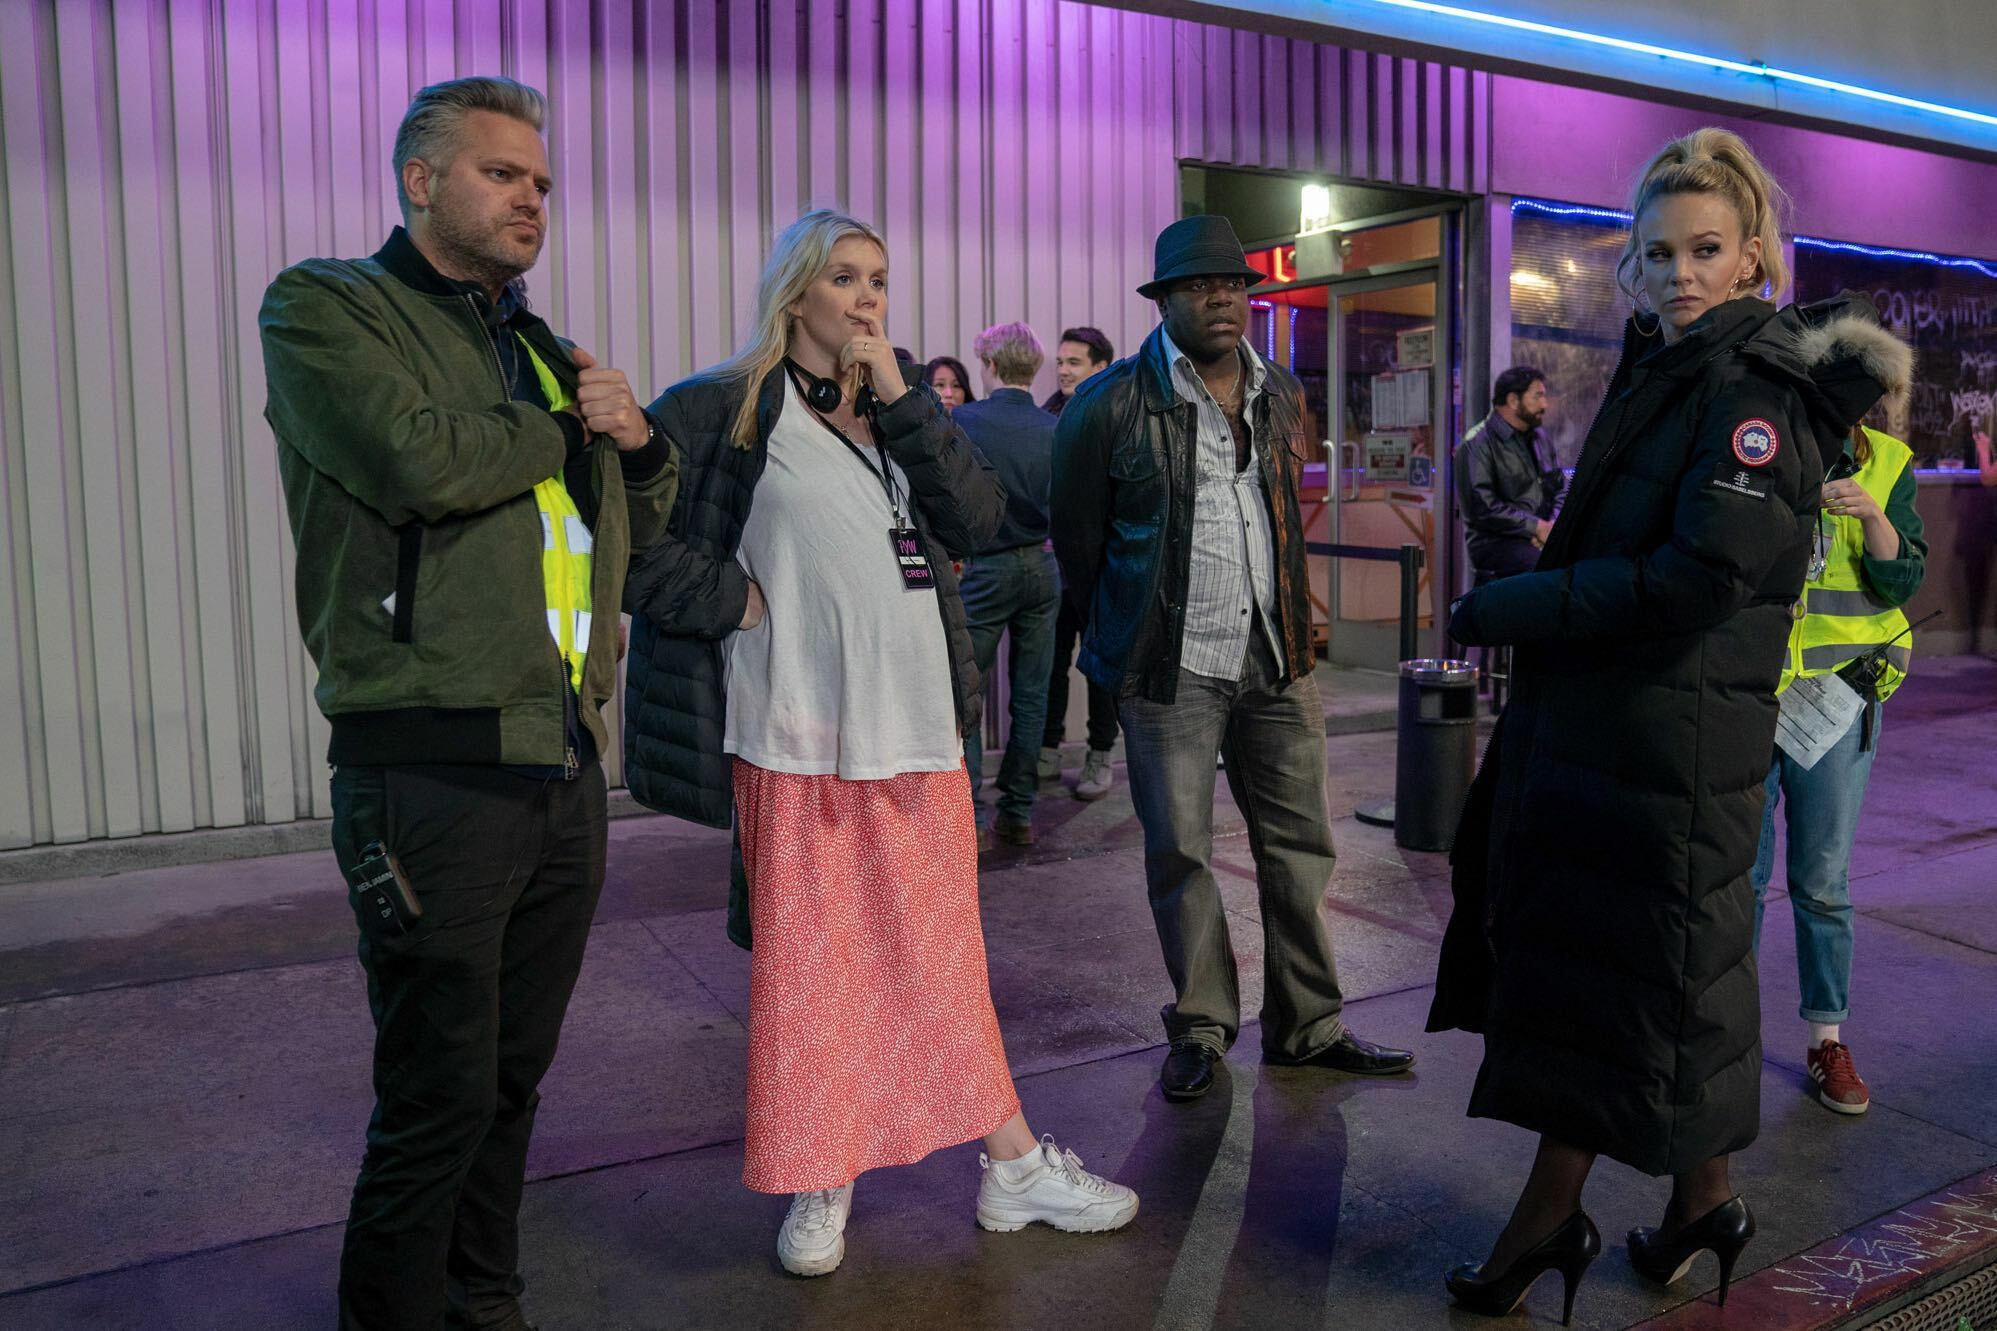 From left, director of photography Benjamin Kracun, writer/director Emerald Fennell, actor Sam Richardson, and actor Carey Mulligan on the set of